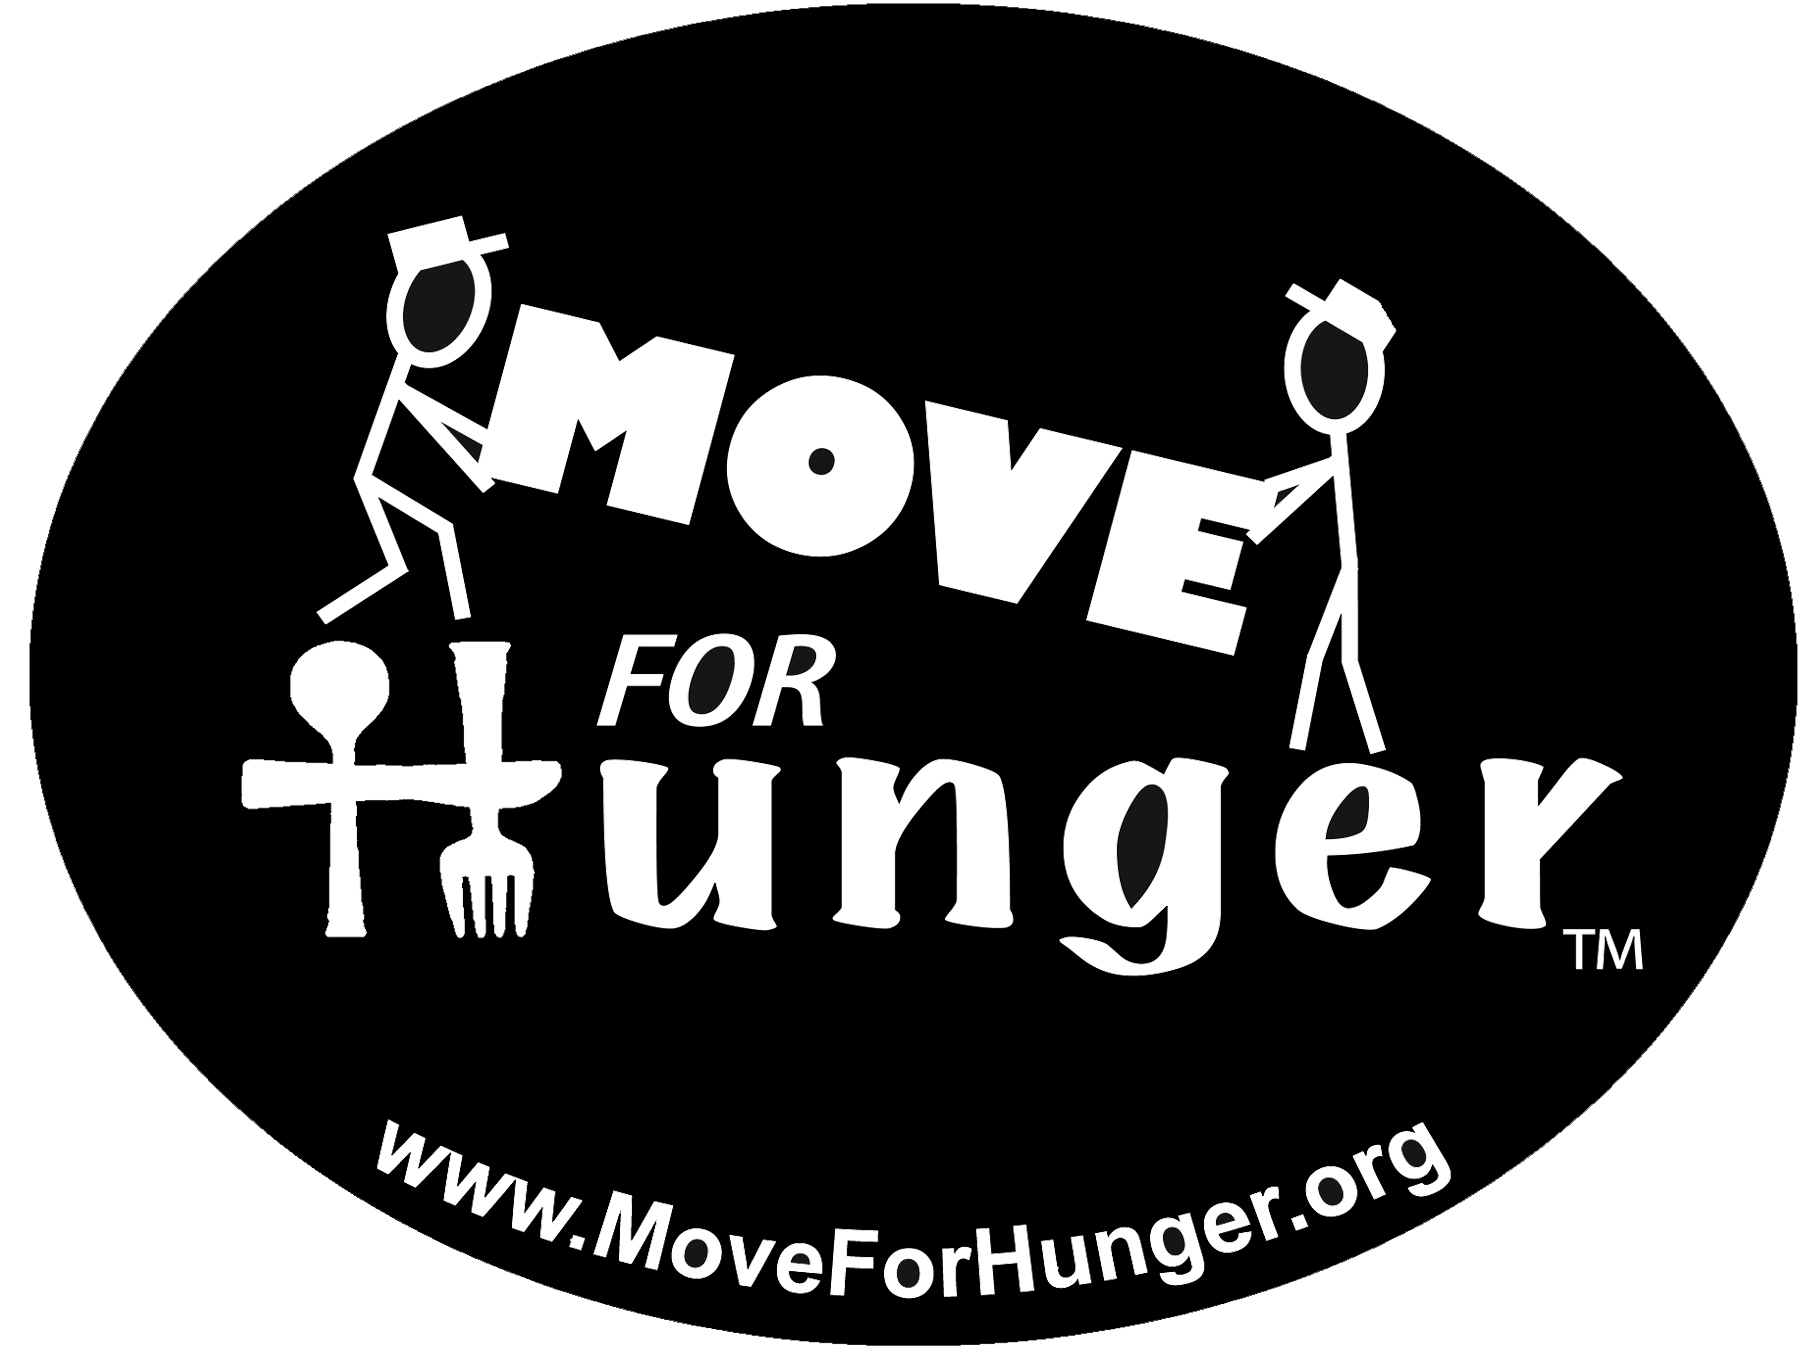 FCMMoveForHunger